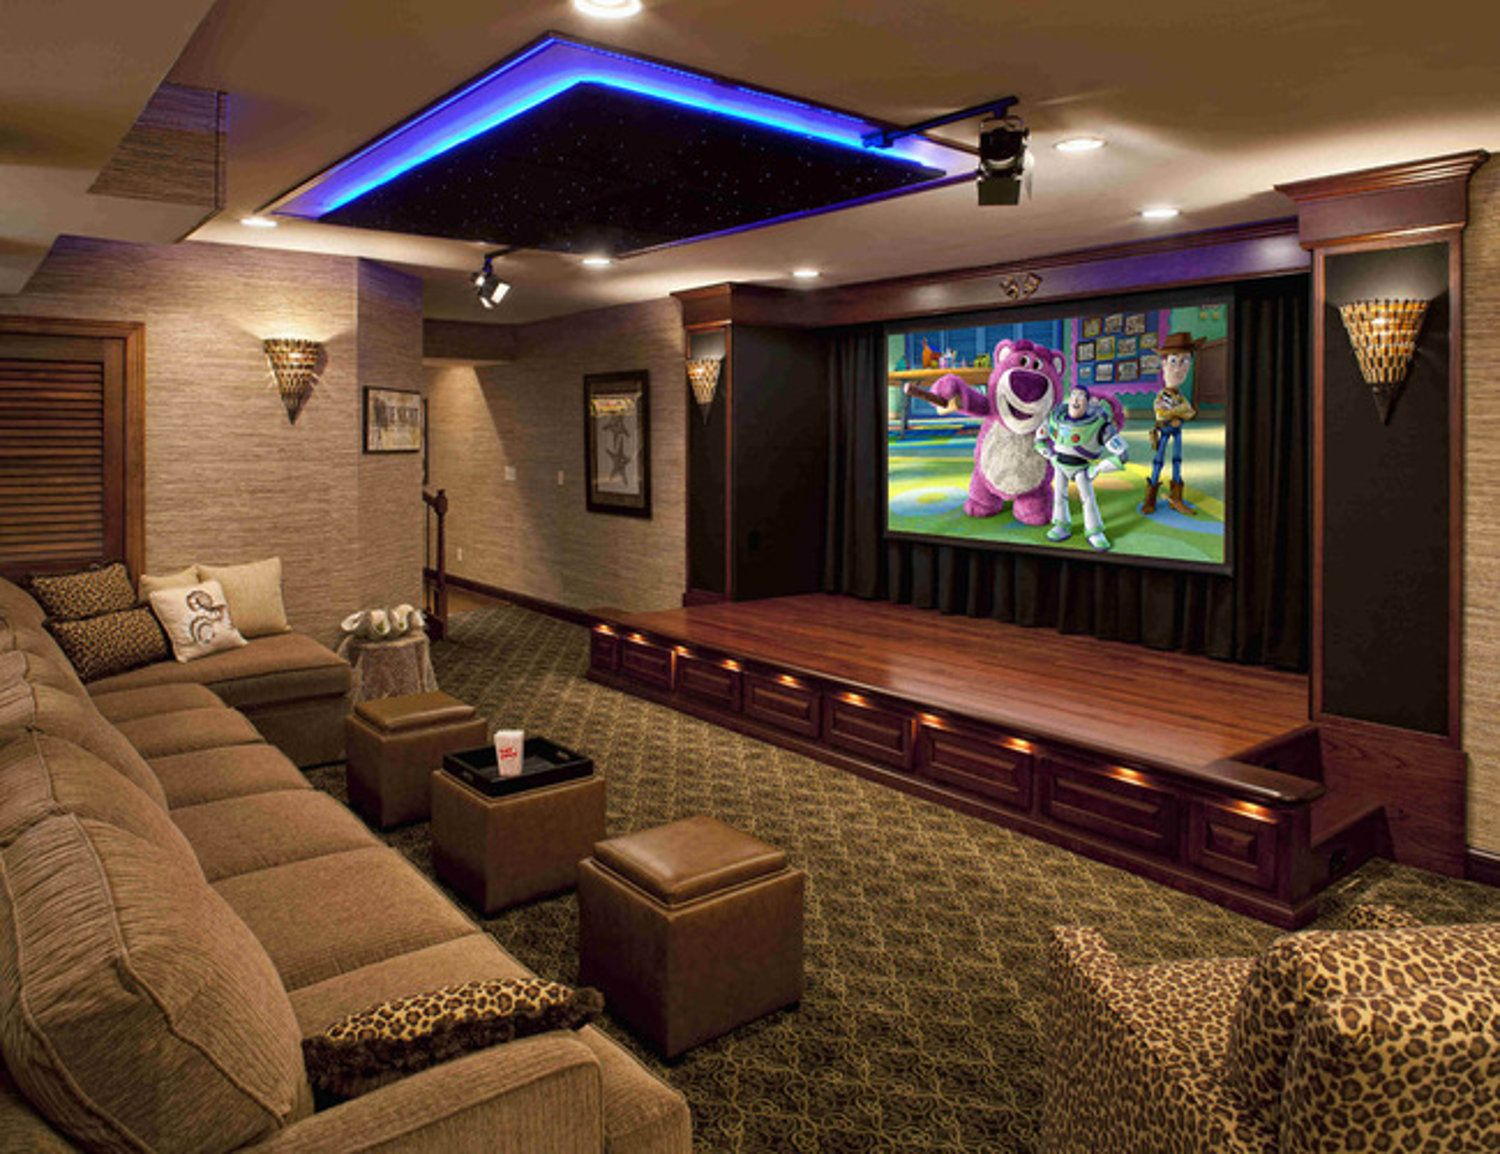 20 Stunning Basement Ceiling Ideas Are Completely Overrated Home Cinema Room At Home Movie Theater Home Theater Rooms